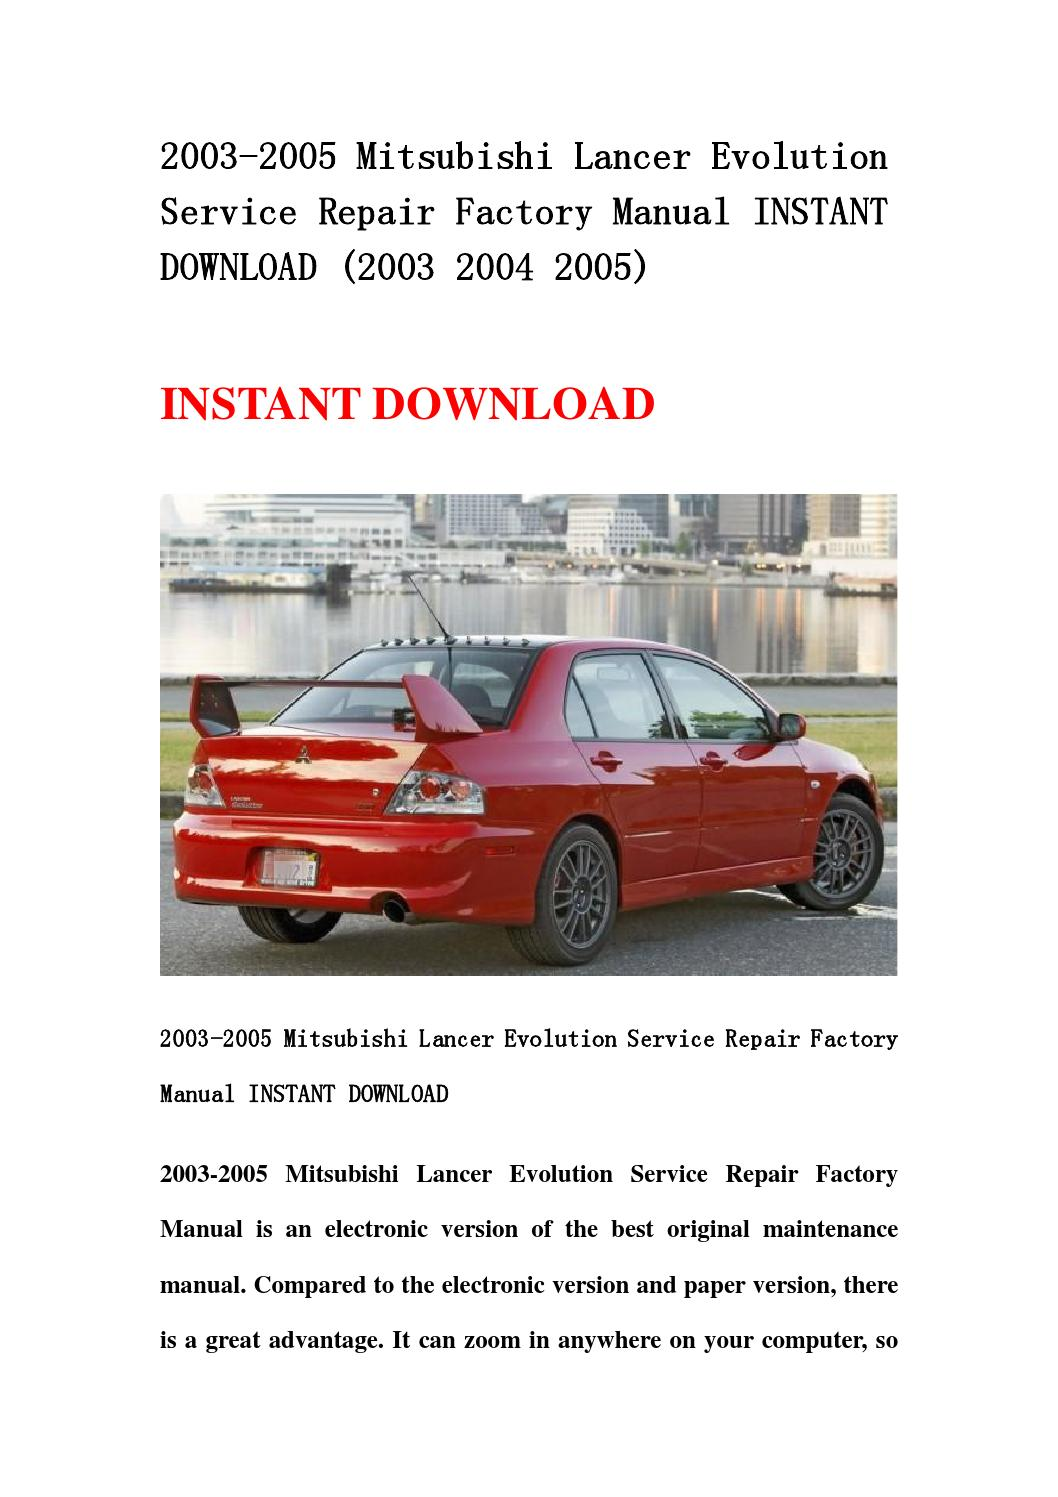 2003 2005 mitsubishi lancer evolution service repair factory manual instant  download (2003 2004 2005 by fvgbtg - issuu